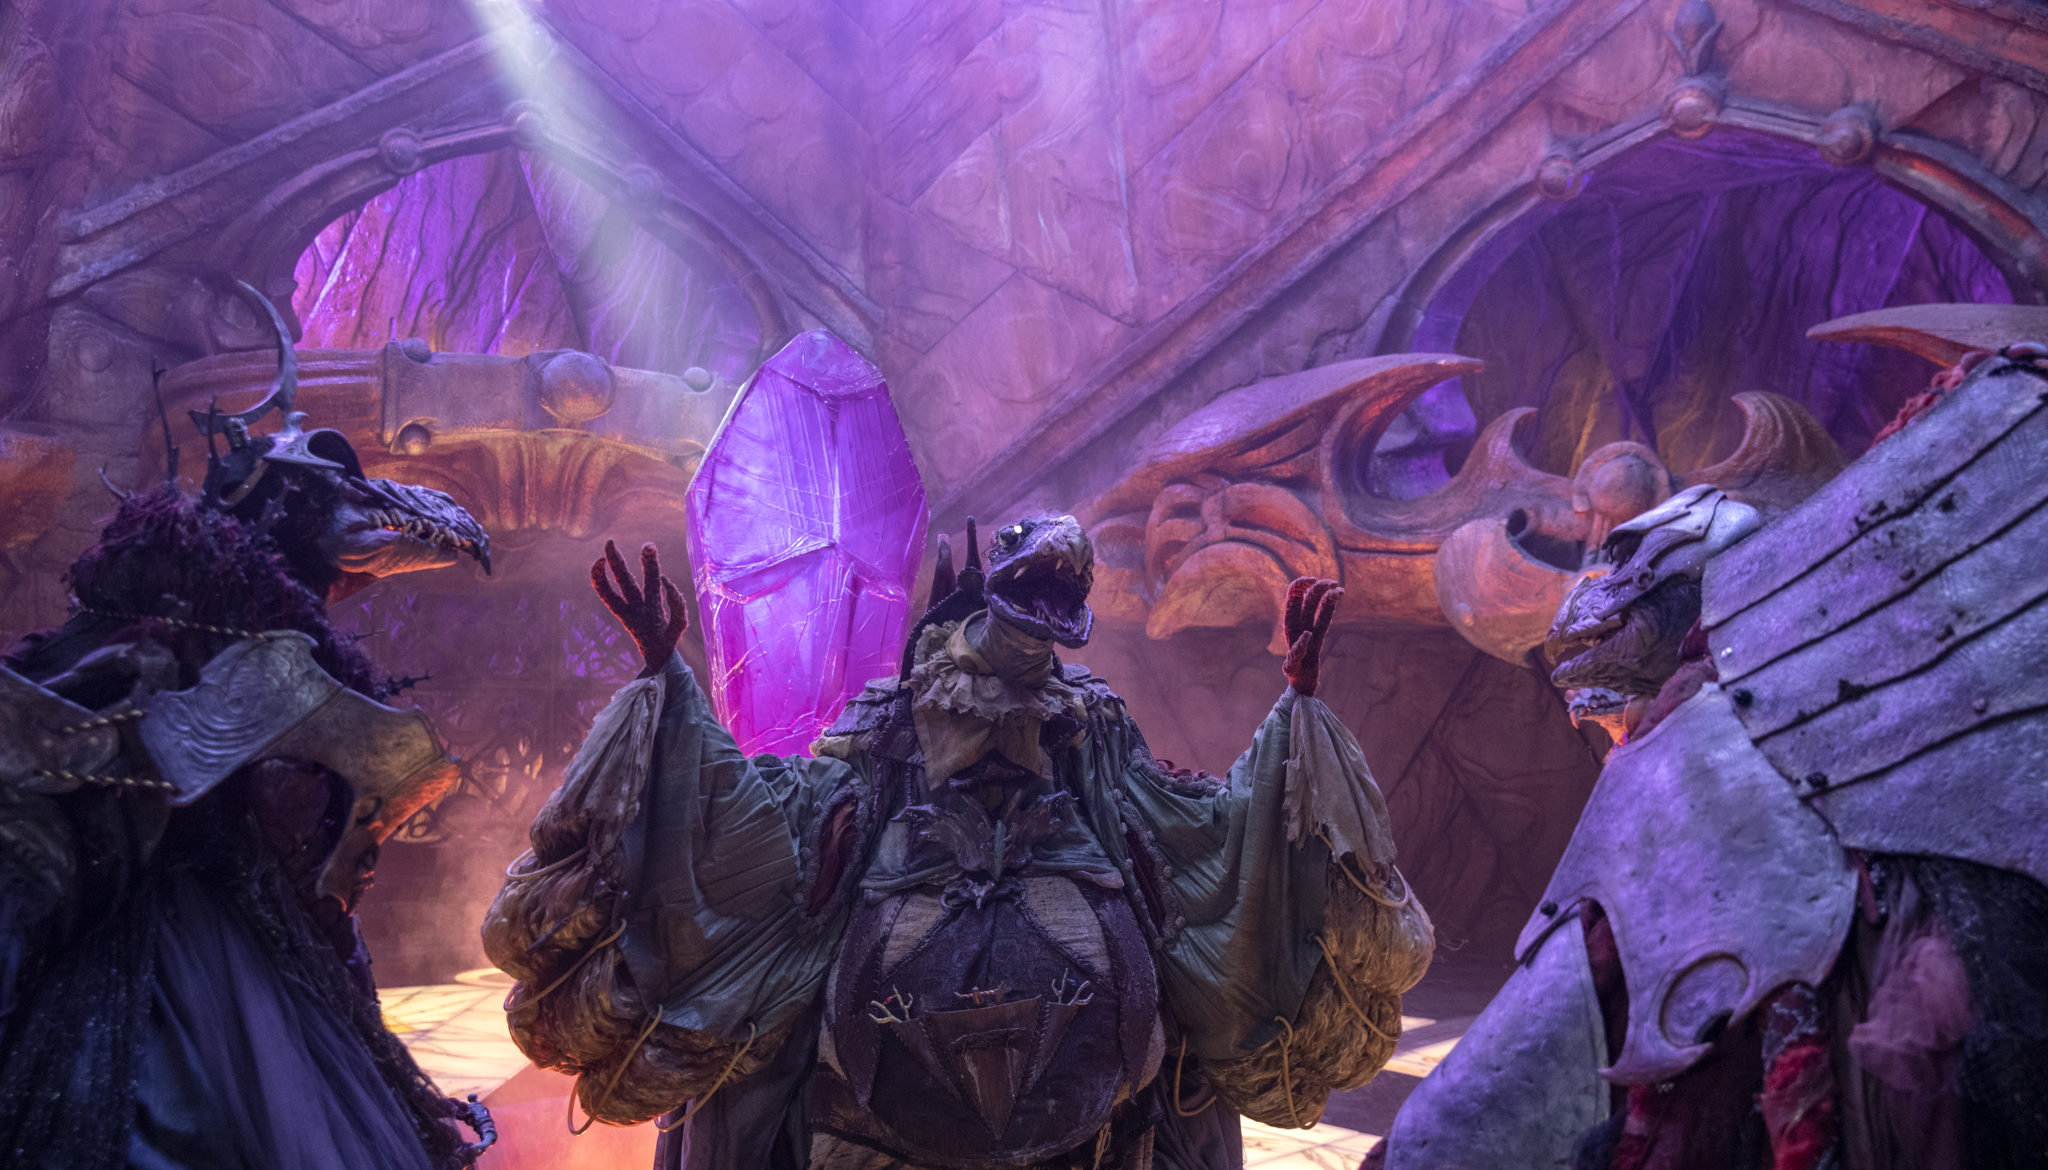 The Dark Crystal gana el Emmy y Netflix la cancela; no habrá segunda temporada